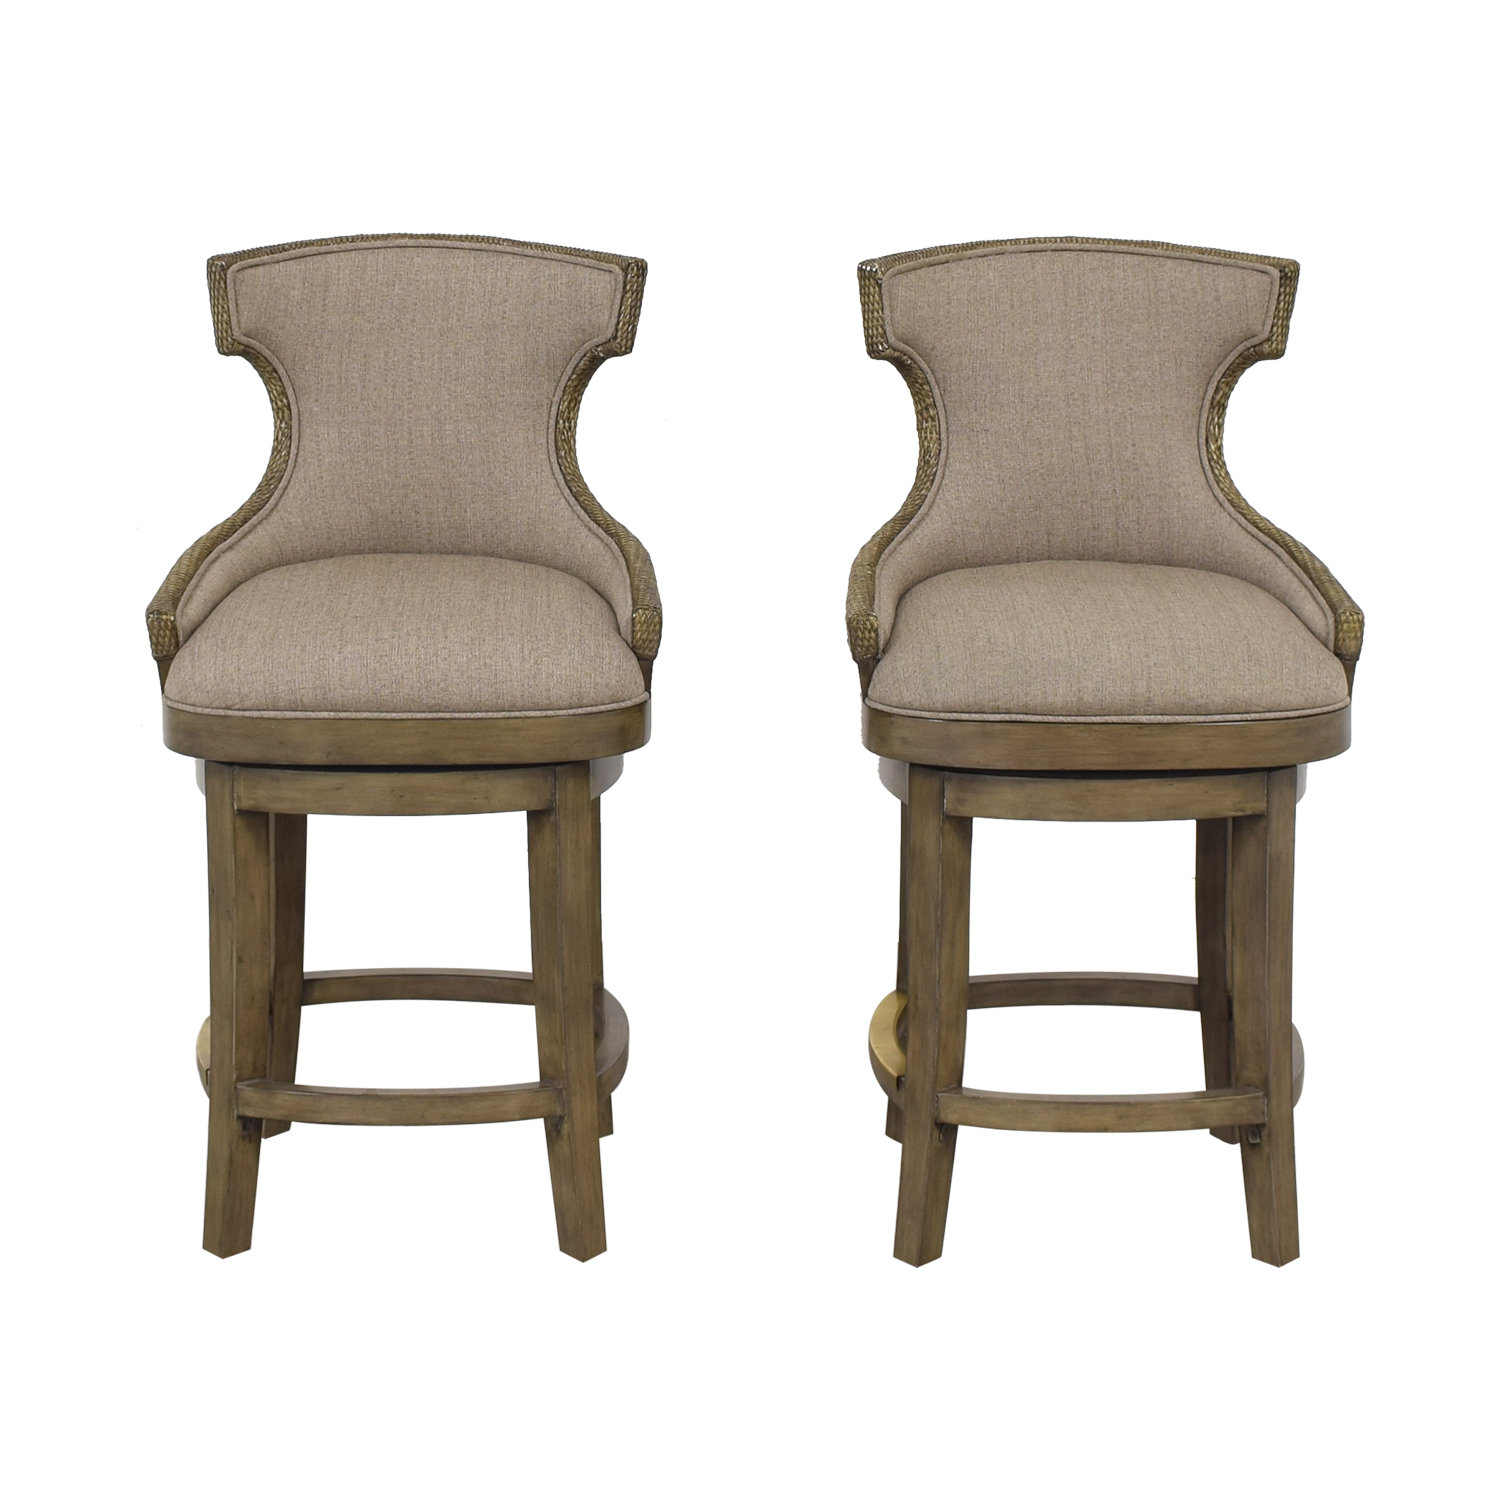 PI Inc Upholstered Swivel Bar Stools for sale